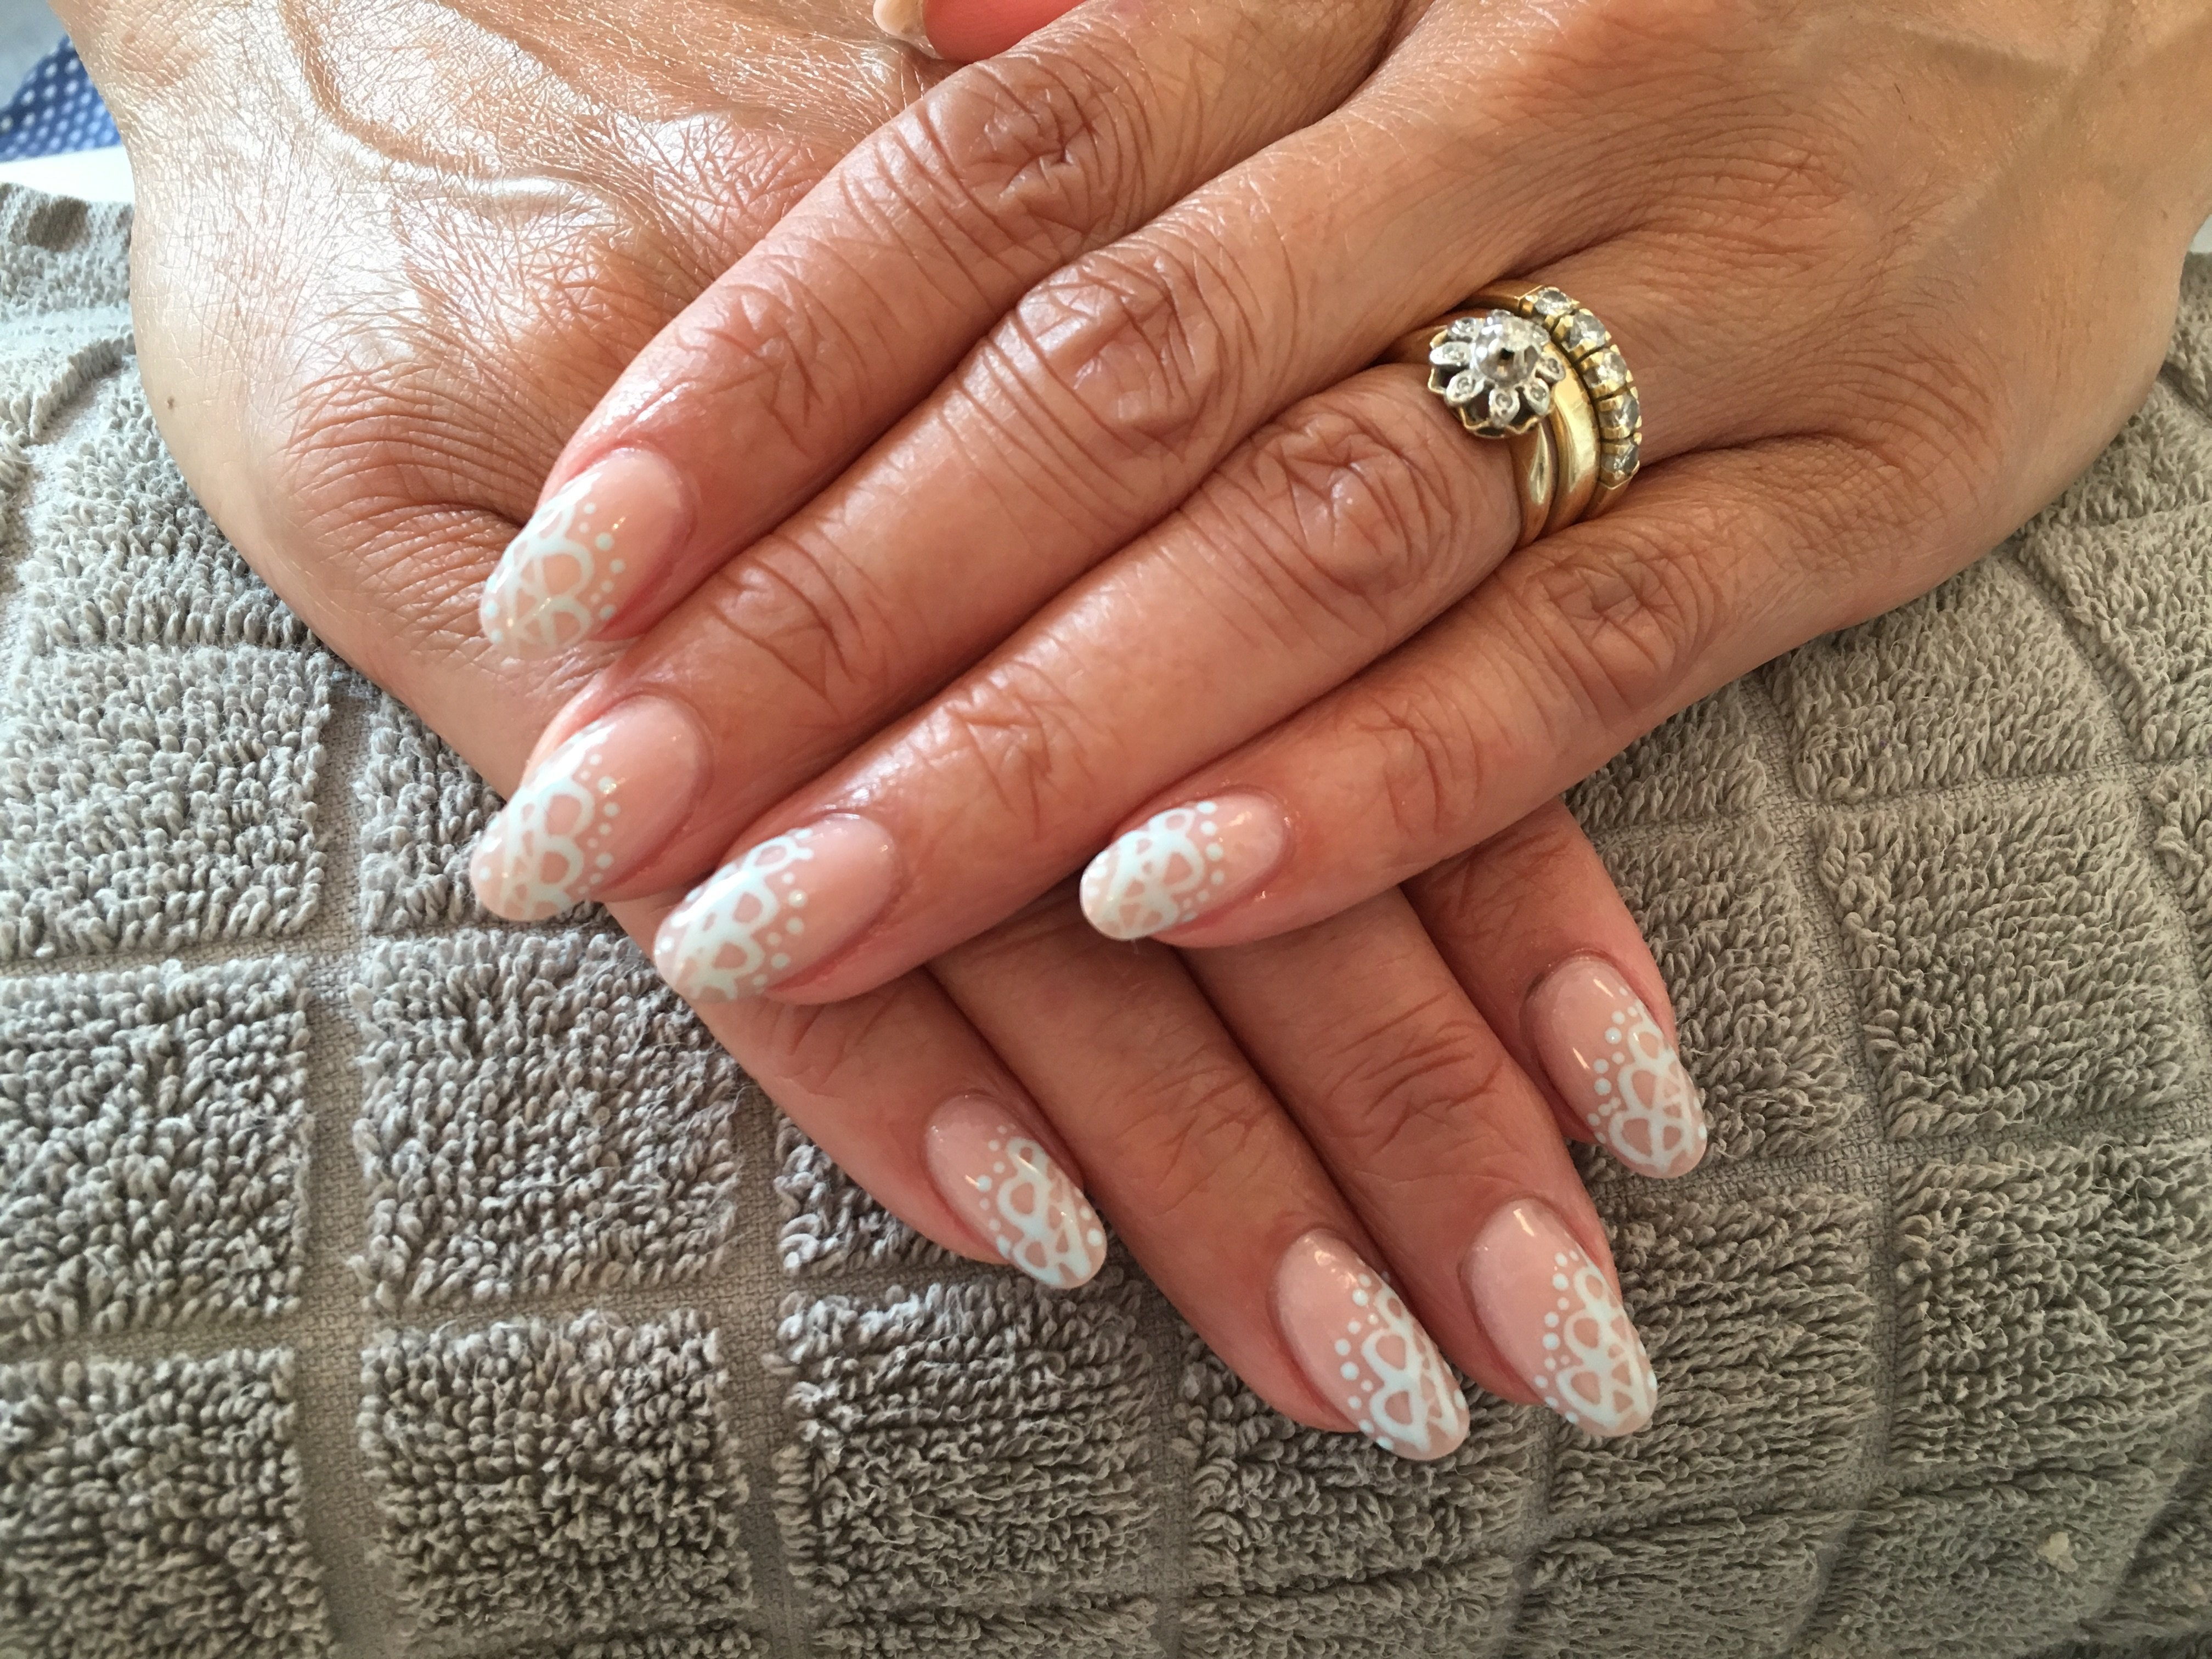 Care 4 Your Nails Beauty Salon Acryl Nagels 25 Care 4 Your Nails Beauty Salon